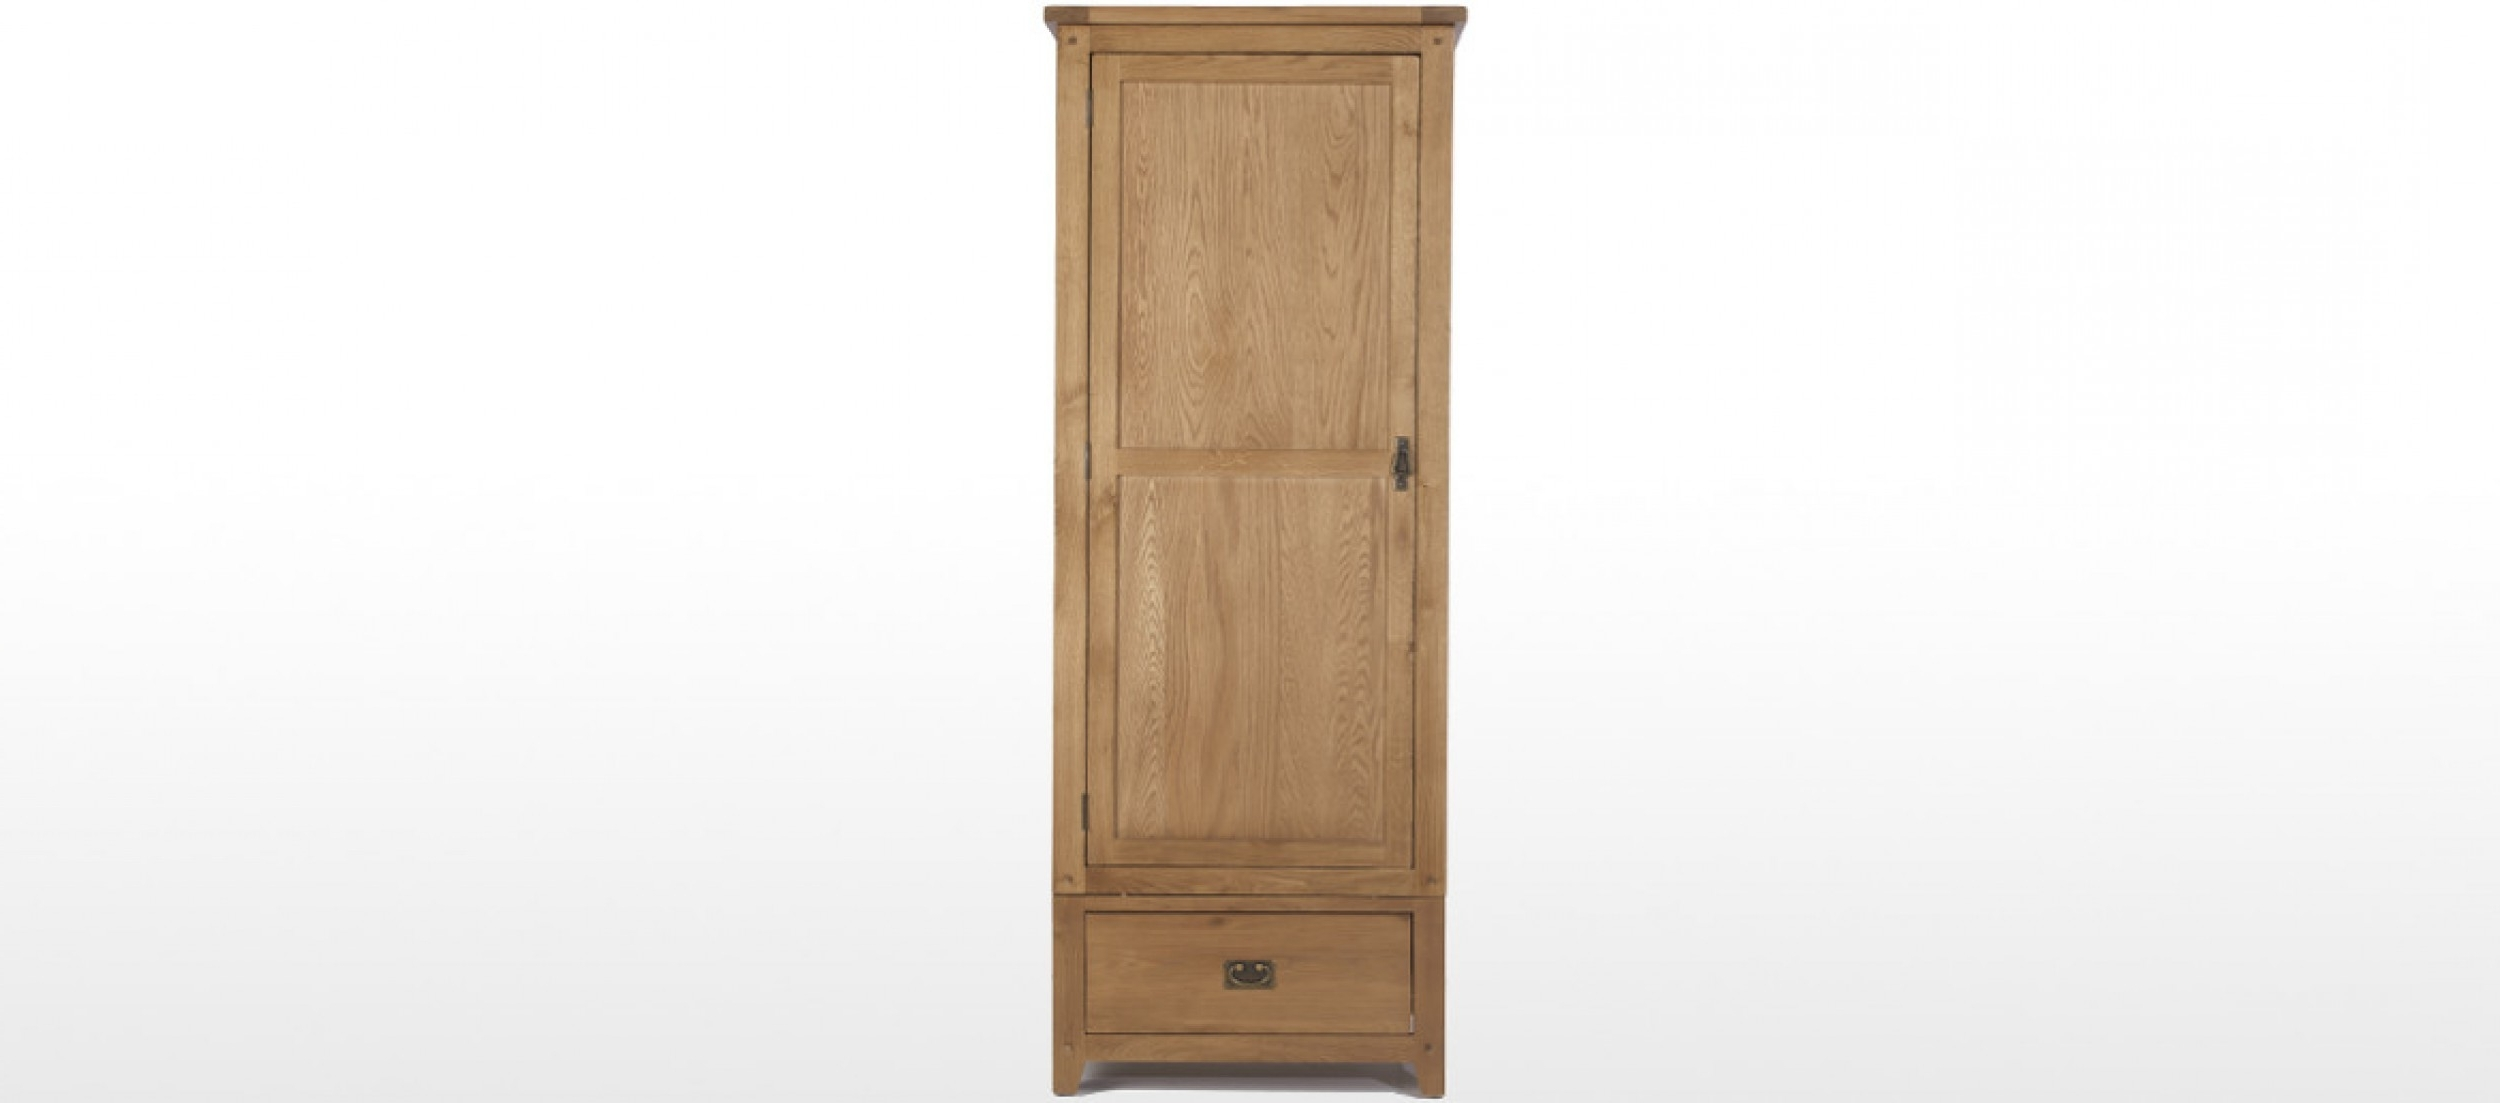 Most Up To Date Oak Wardrobes With Drawers And Shelves Within Single Door Wardrobe With Drawers Ikea White Canvas This Is Best (View 7 of 15)